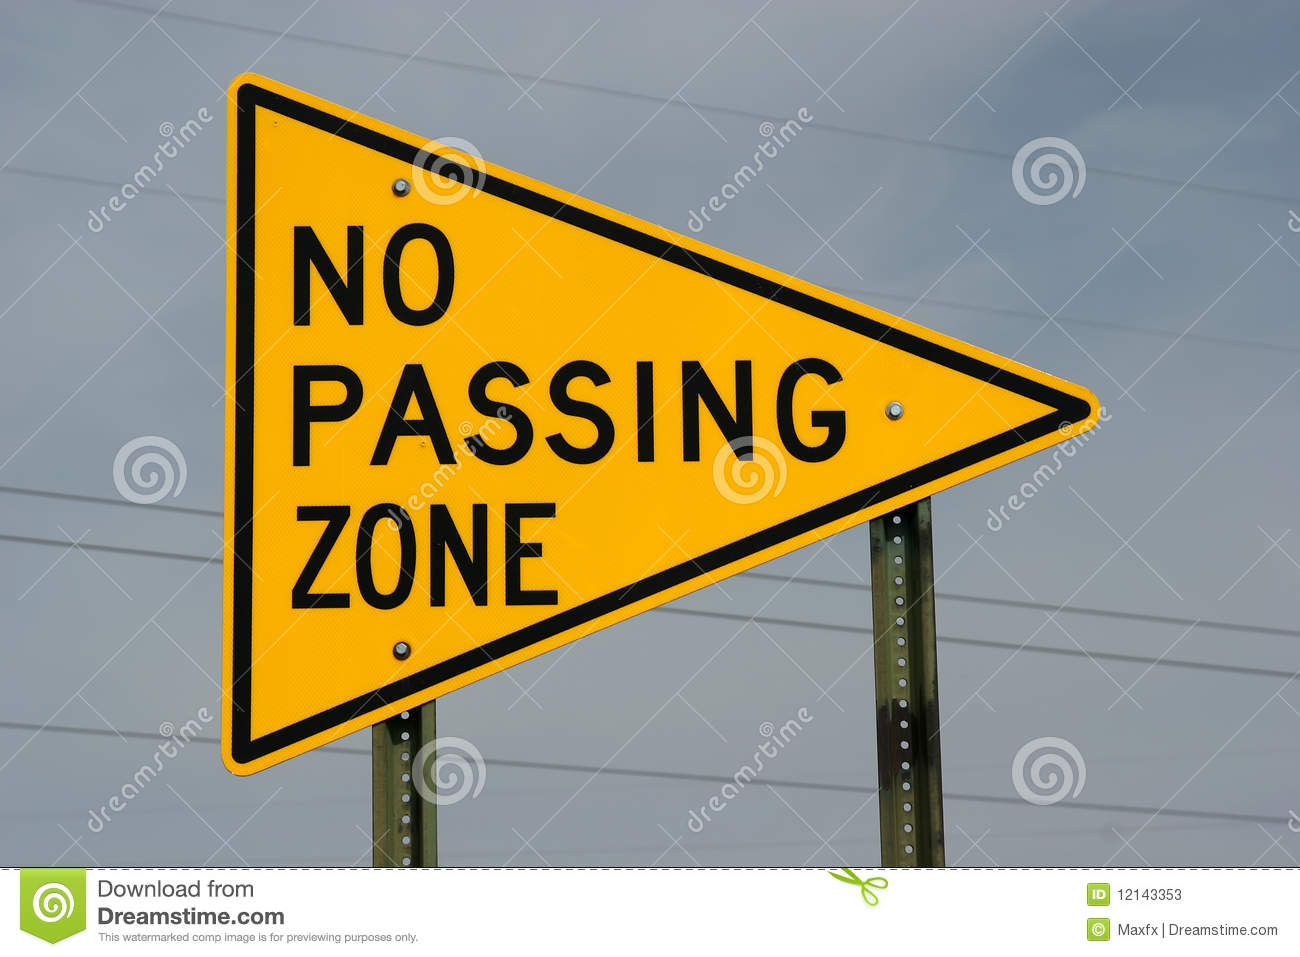 no-passing-zone-sign-12143353.jpg